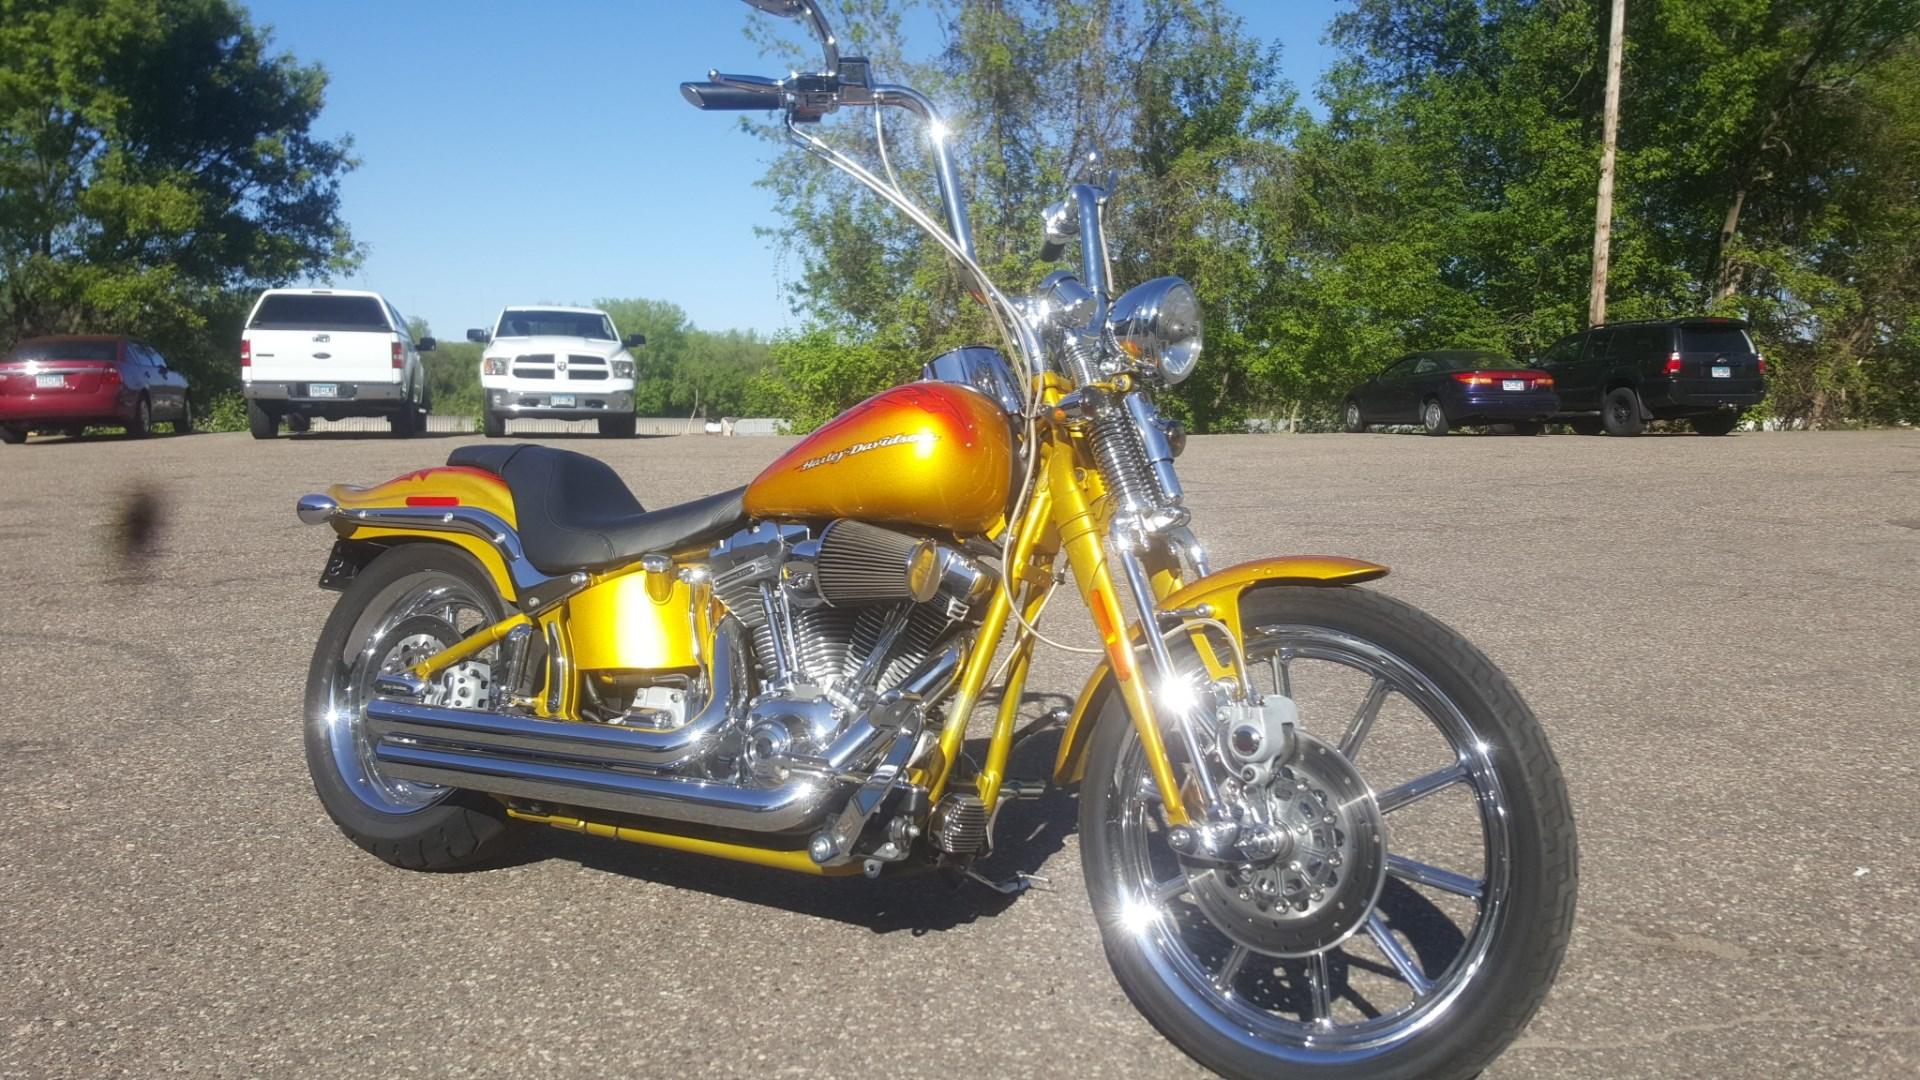 2007 Harley Davidson Fxstsse Screamin Eagle Softail Springer Pic 8 Onlymotorbikes Com